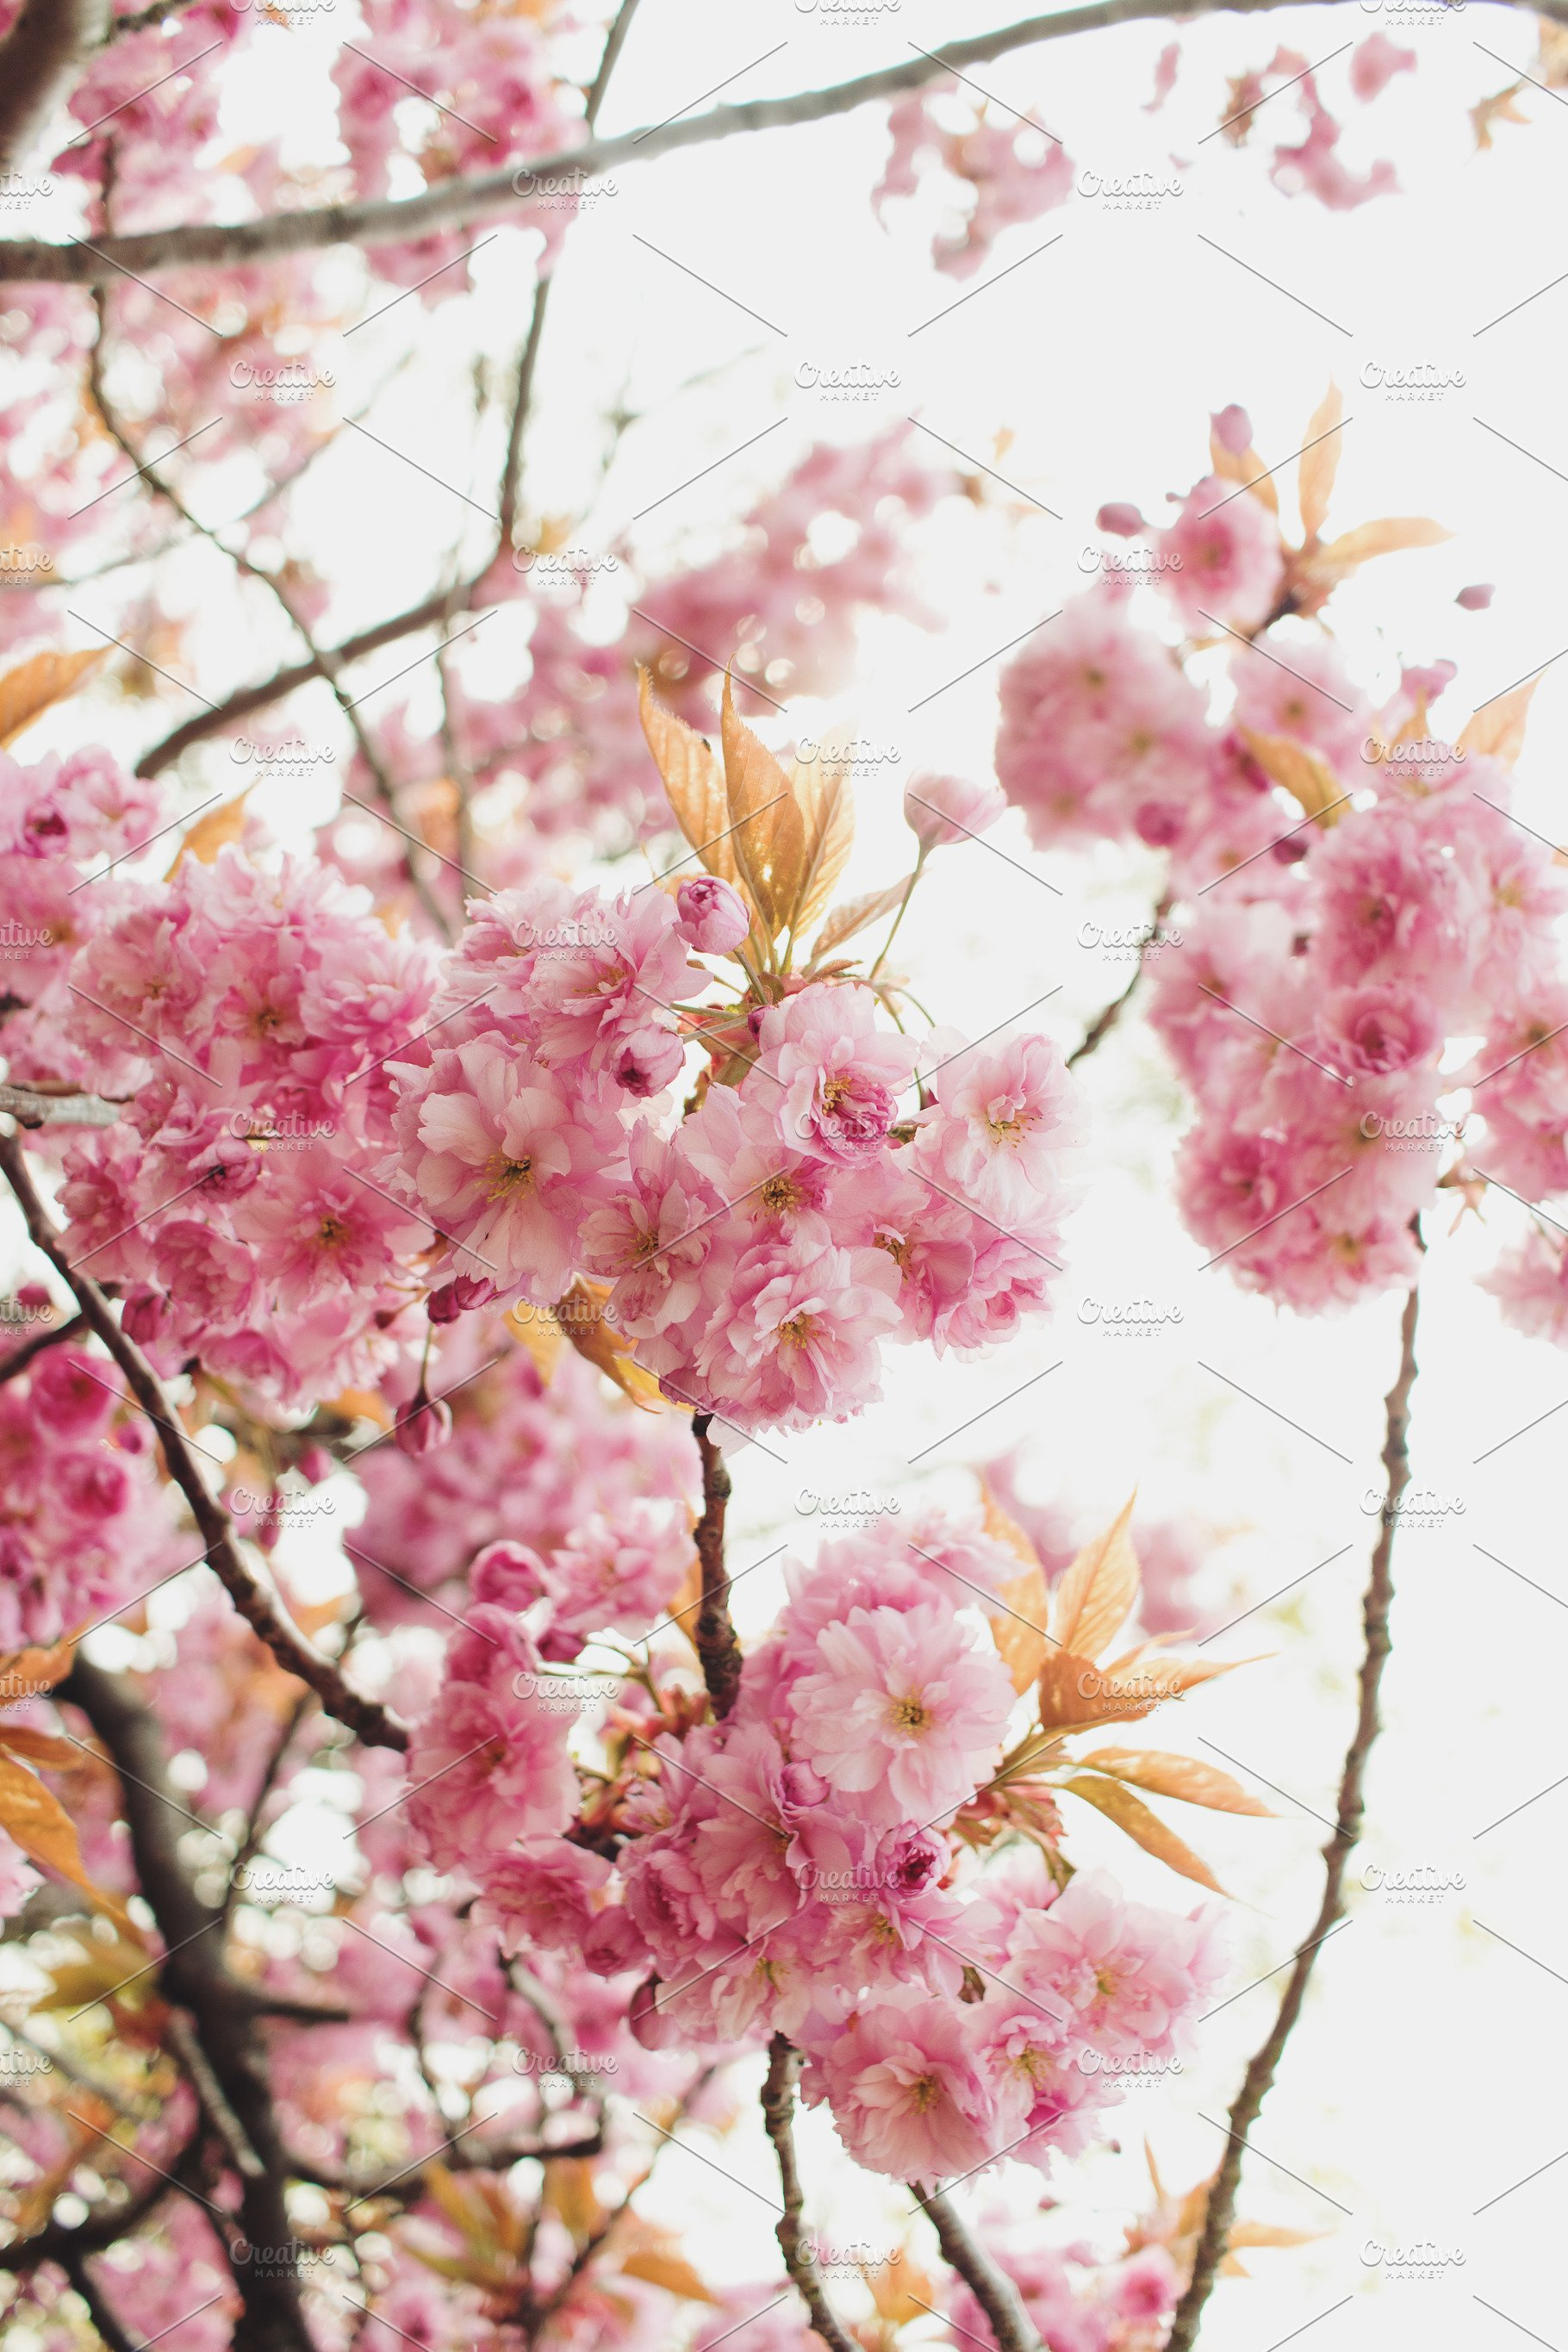 Pink Flowers In Spring High Quality Nature Stock Photos